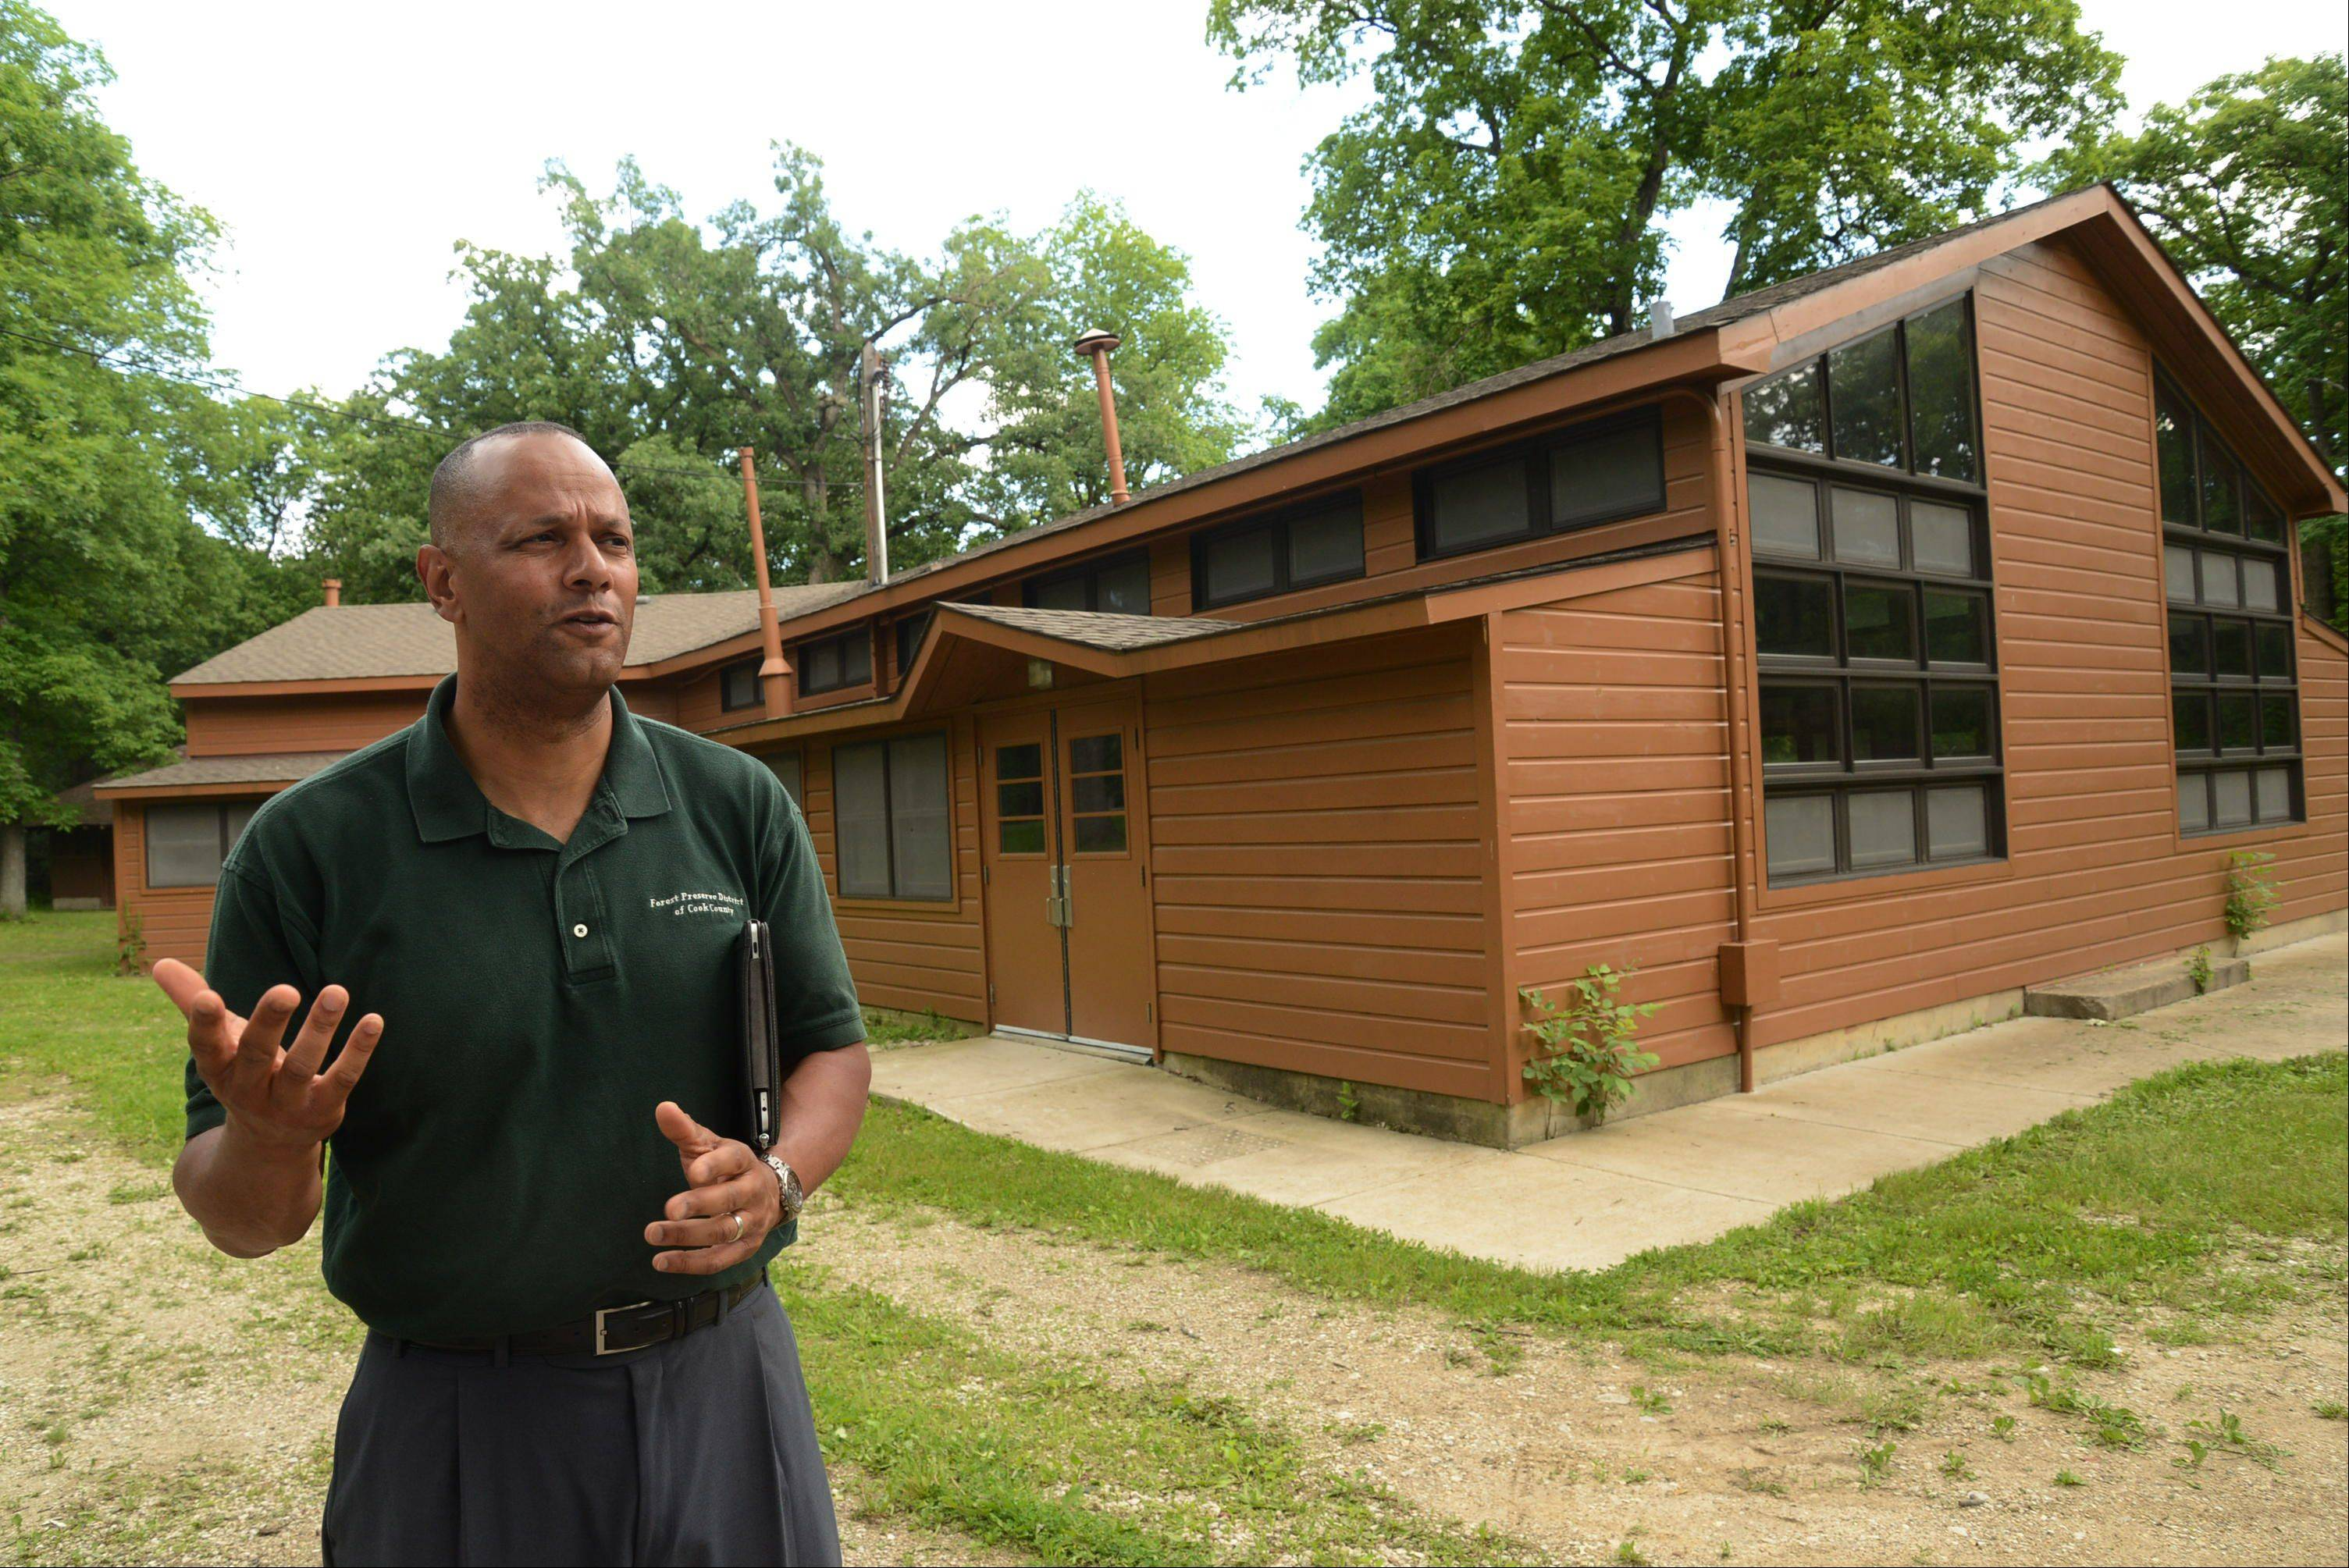 Arnold Randall, General Superintendent Forest Preserve District of Cook County, will not have increased fees to offset any additional costs to the district this year.